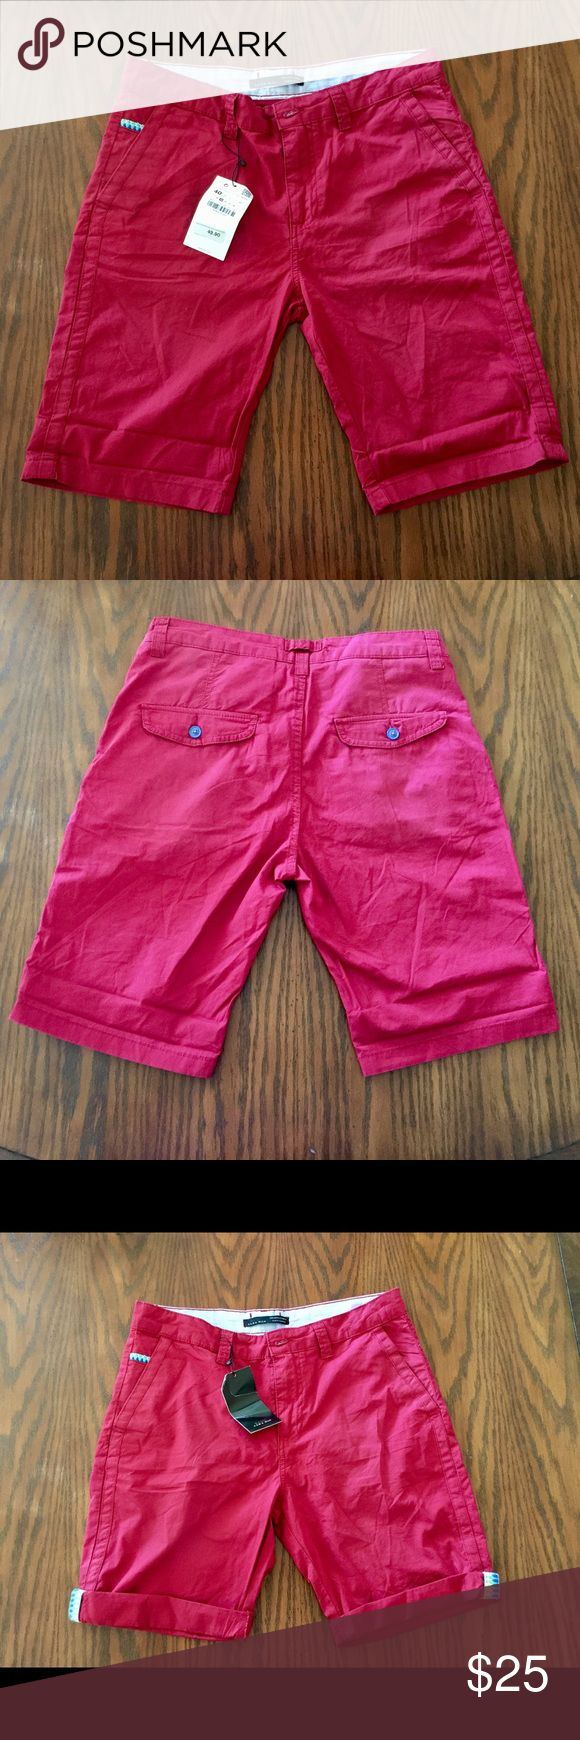 "ZARA Basic Bermuda Men's Shorts 100% Cotton Red 31 Men's Bermuda shorts with front & back pockets. Has Aztec/ tribal print on left pocket and when folded as shown in pictures. Waist size is USA 31 or EUR 40. Rise is 10.5"", inseam is 10"" & length is 21"". Zara Shorts Bermudas"